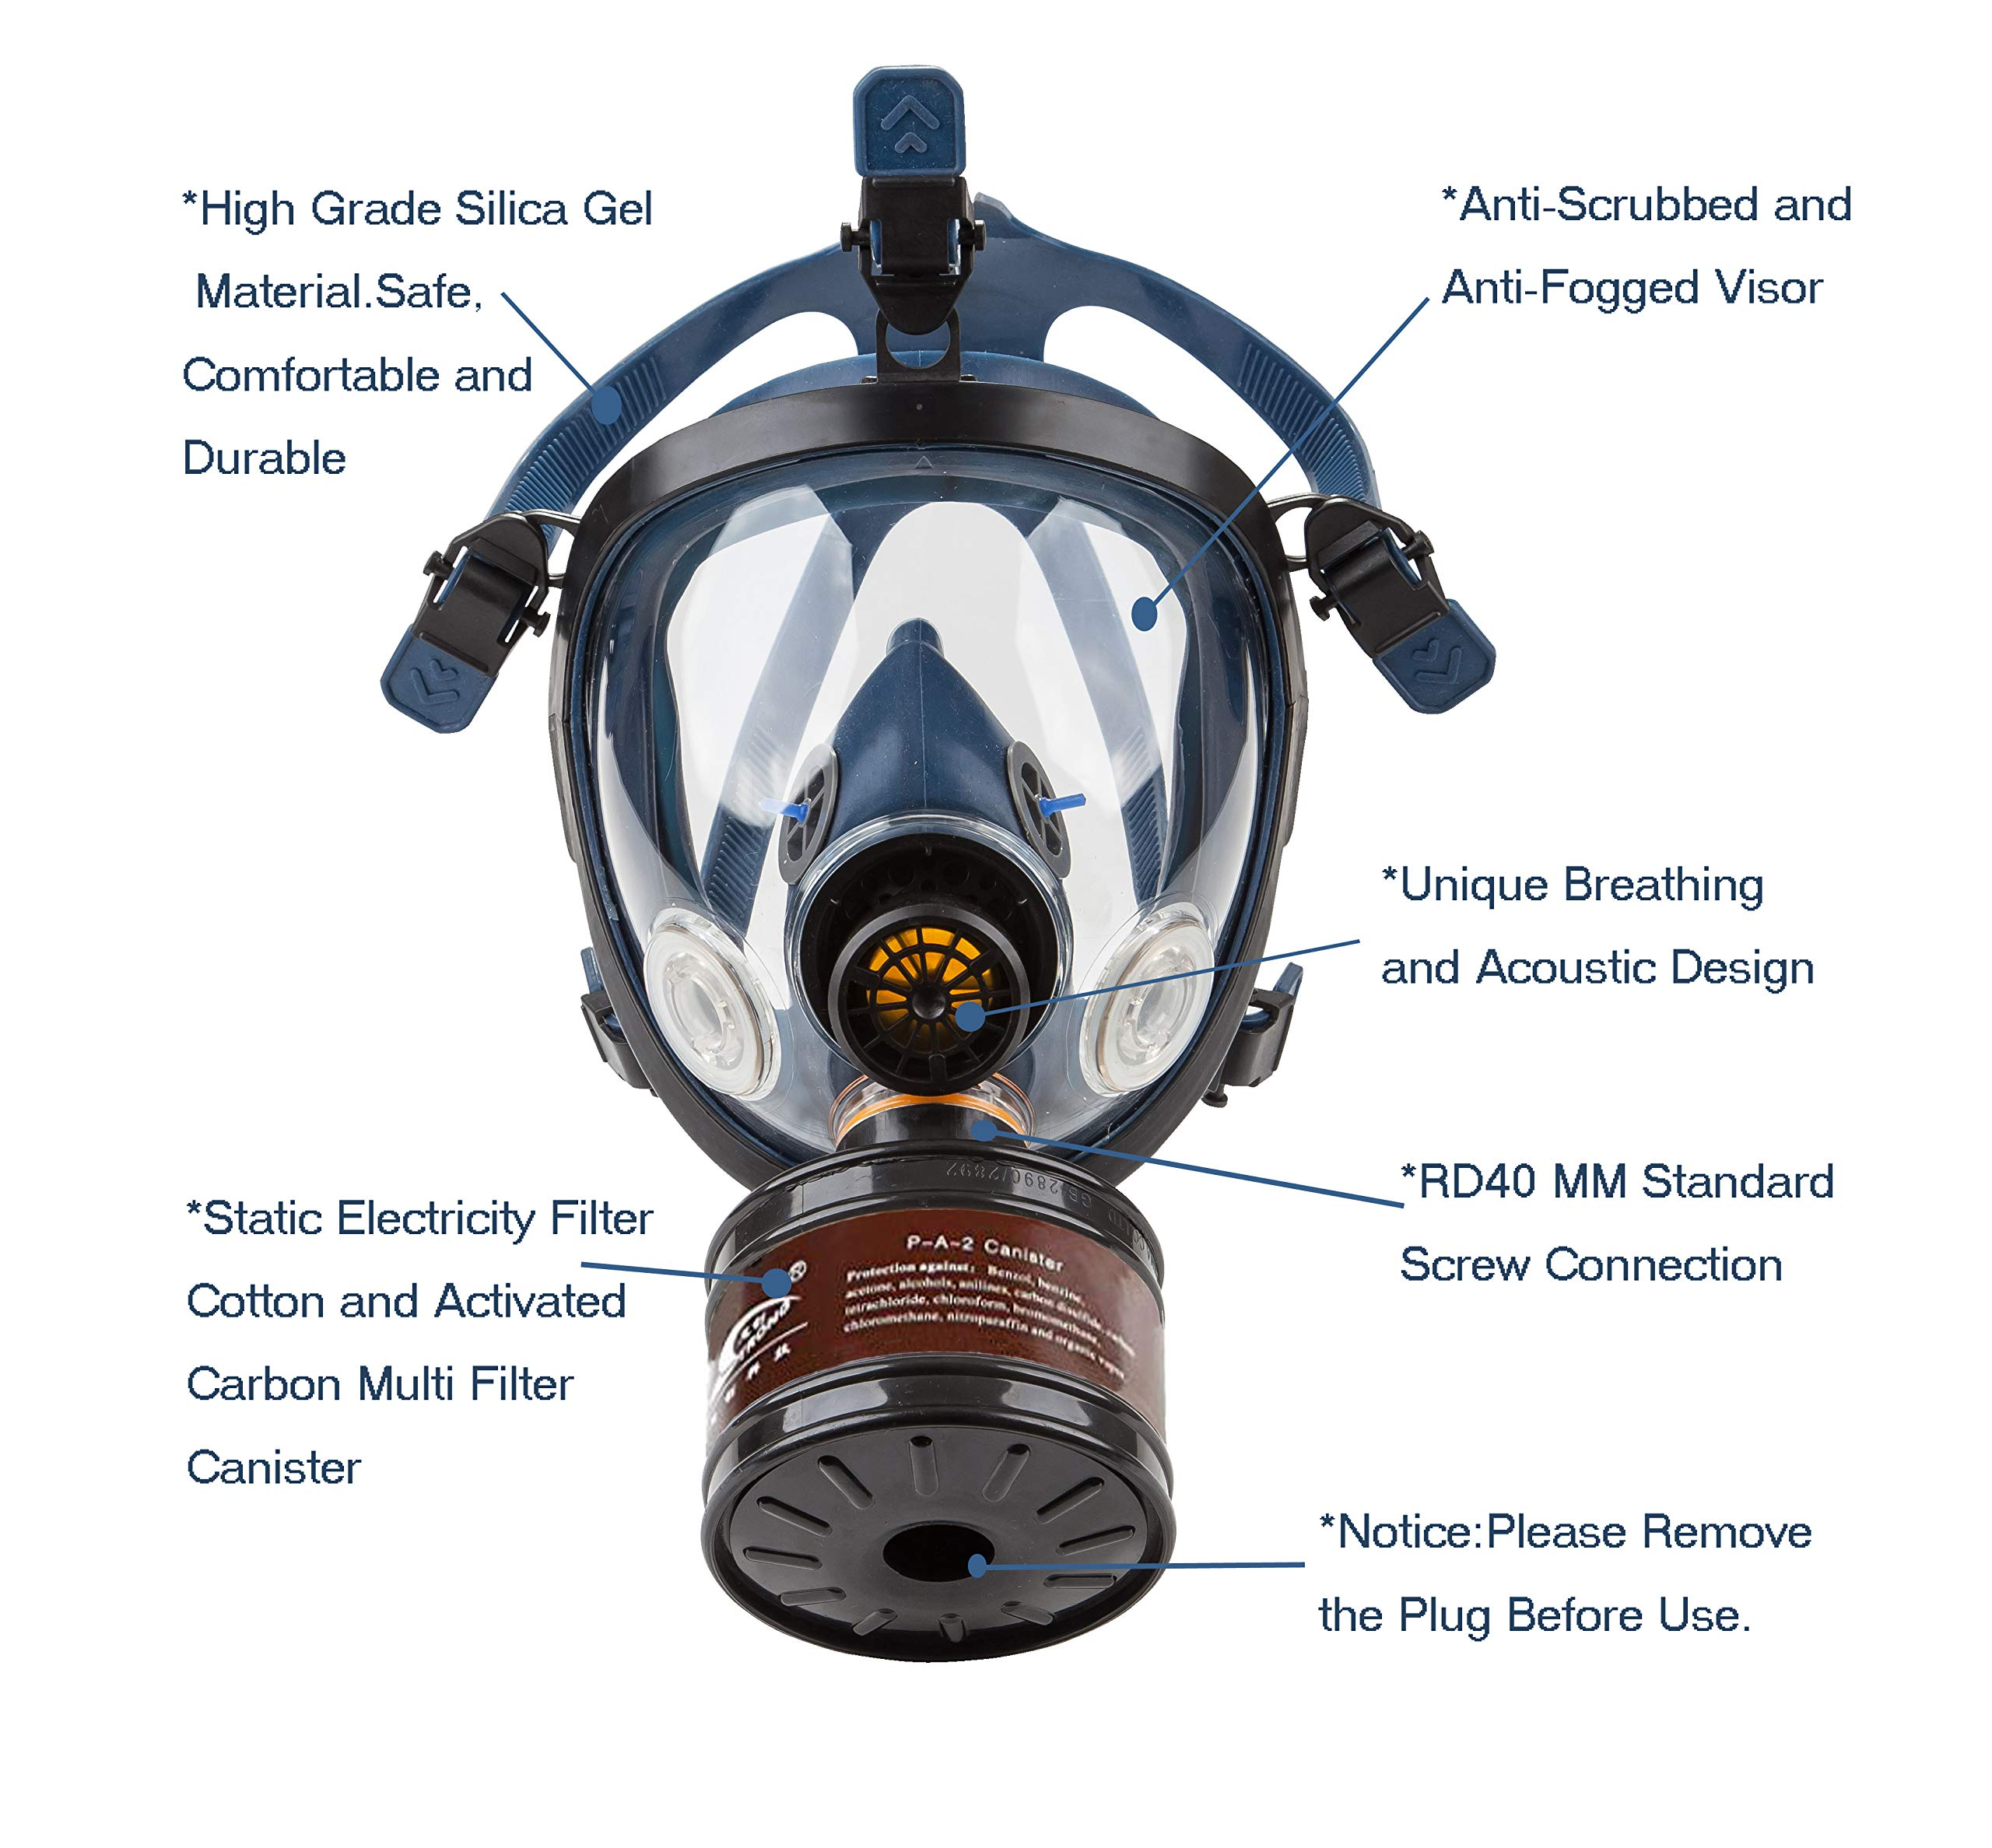 Induschoice Organic Vapor Full Face Respirator Mask Gas Mask Paint Pesticide Chemical Formaldehyde Anti Virus Respiratory Protection(Respirator +1 LDG3 Canister) by Induschoice (Image #6)